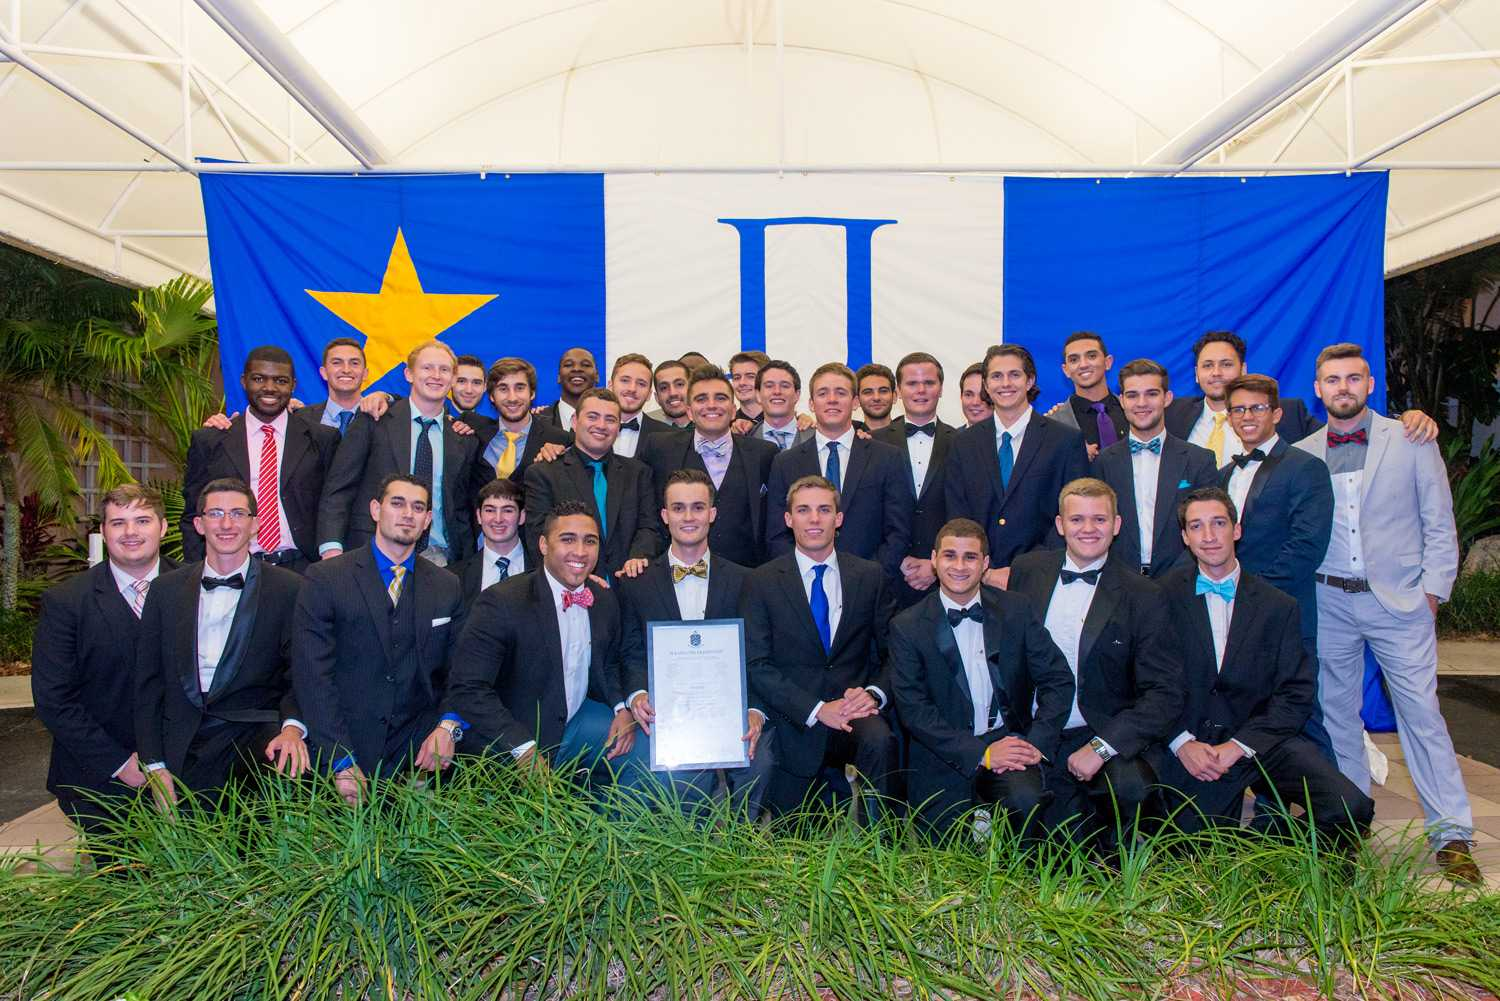 The founding members of Pi Kappa Phi's Kappa Delta  chapter at their chartering event in April. Photo by Max Jackson.